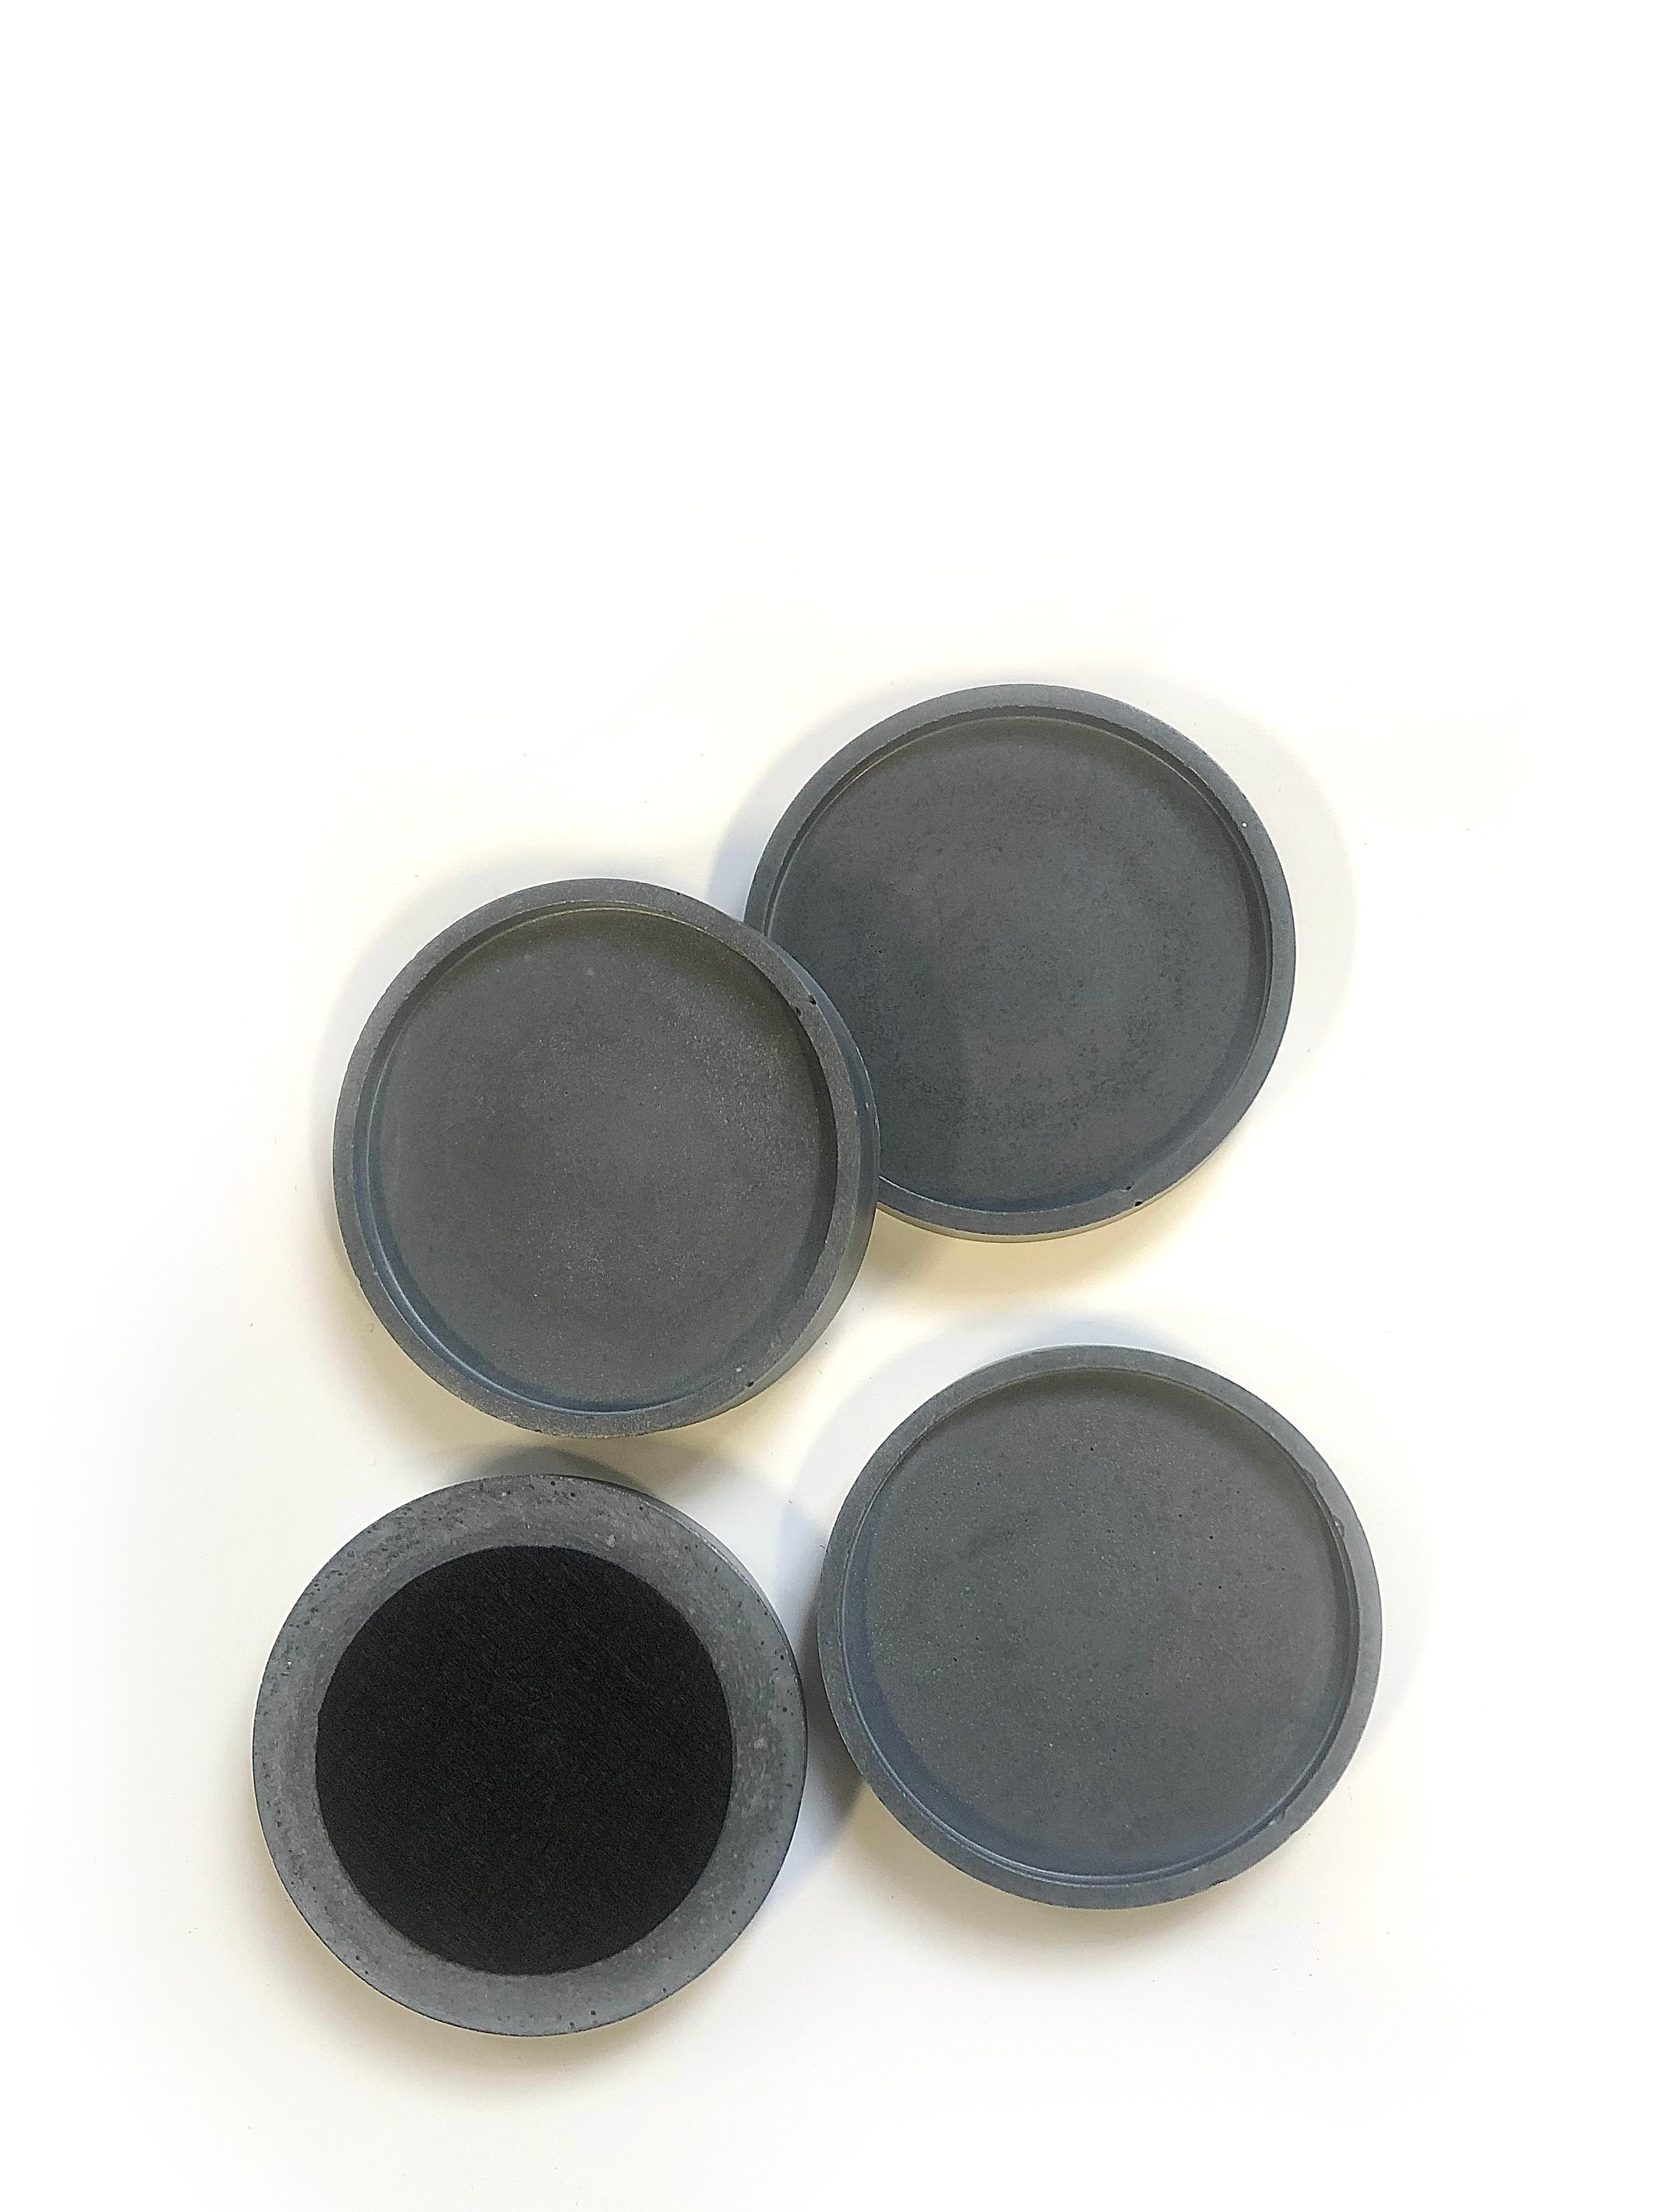 Round Coasters (set of 4) - Dark Charcoal